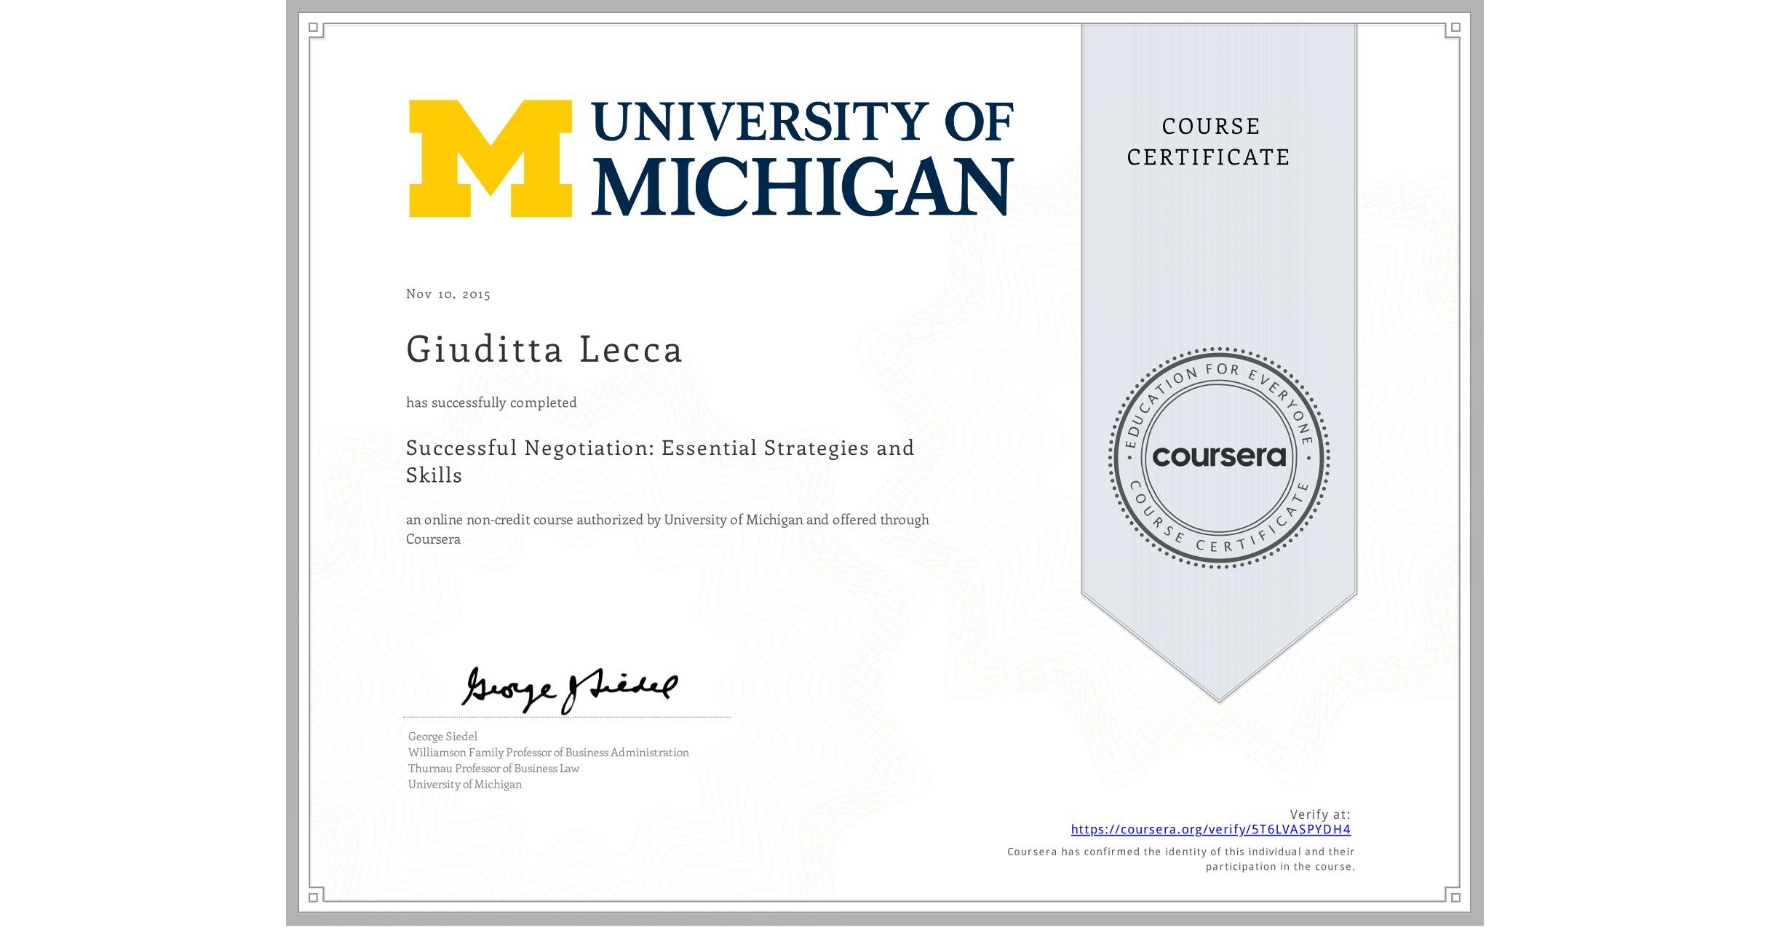 View certificate for Giuditta Lecca, Successful Negotiation: Essential Strategies and Skills, an online non-credit course authorized by University of Michigan and offered through Coursera